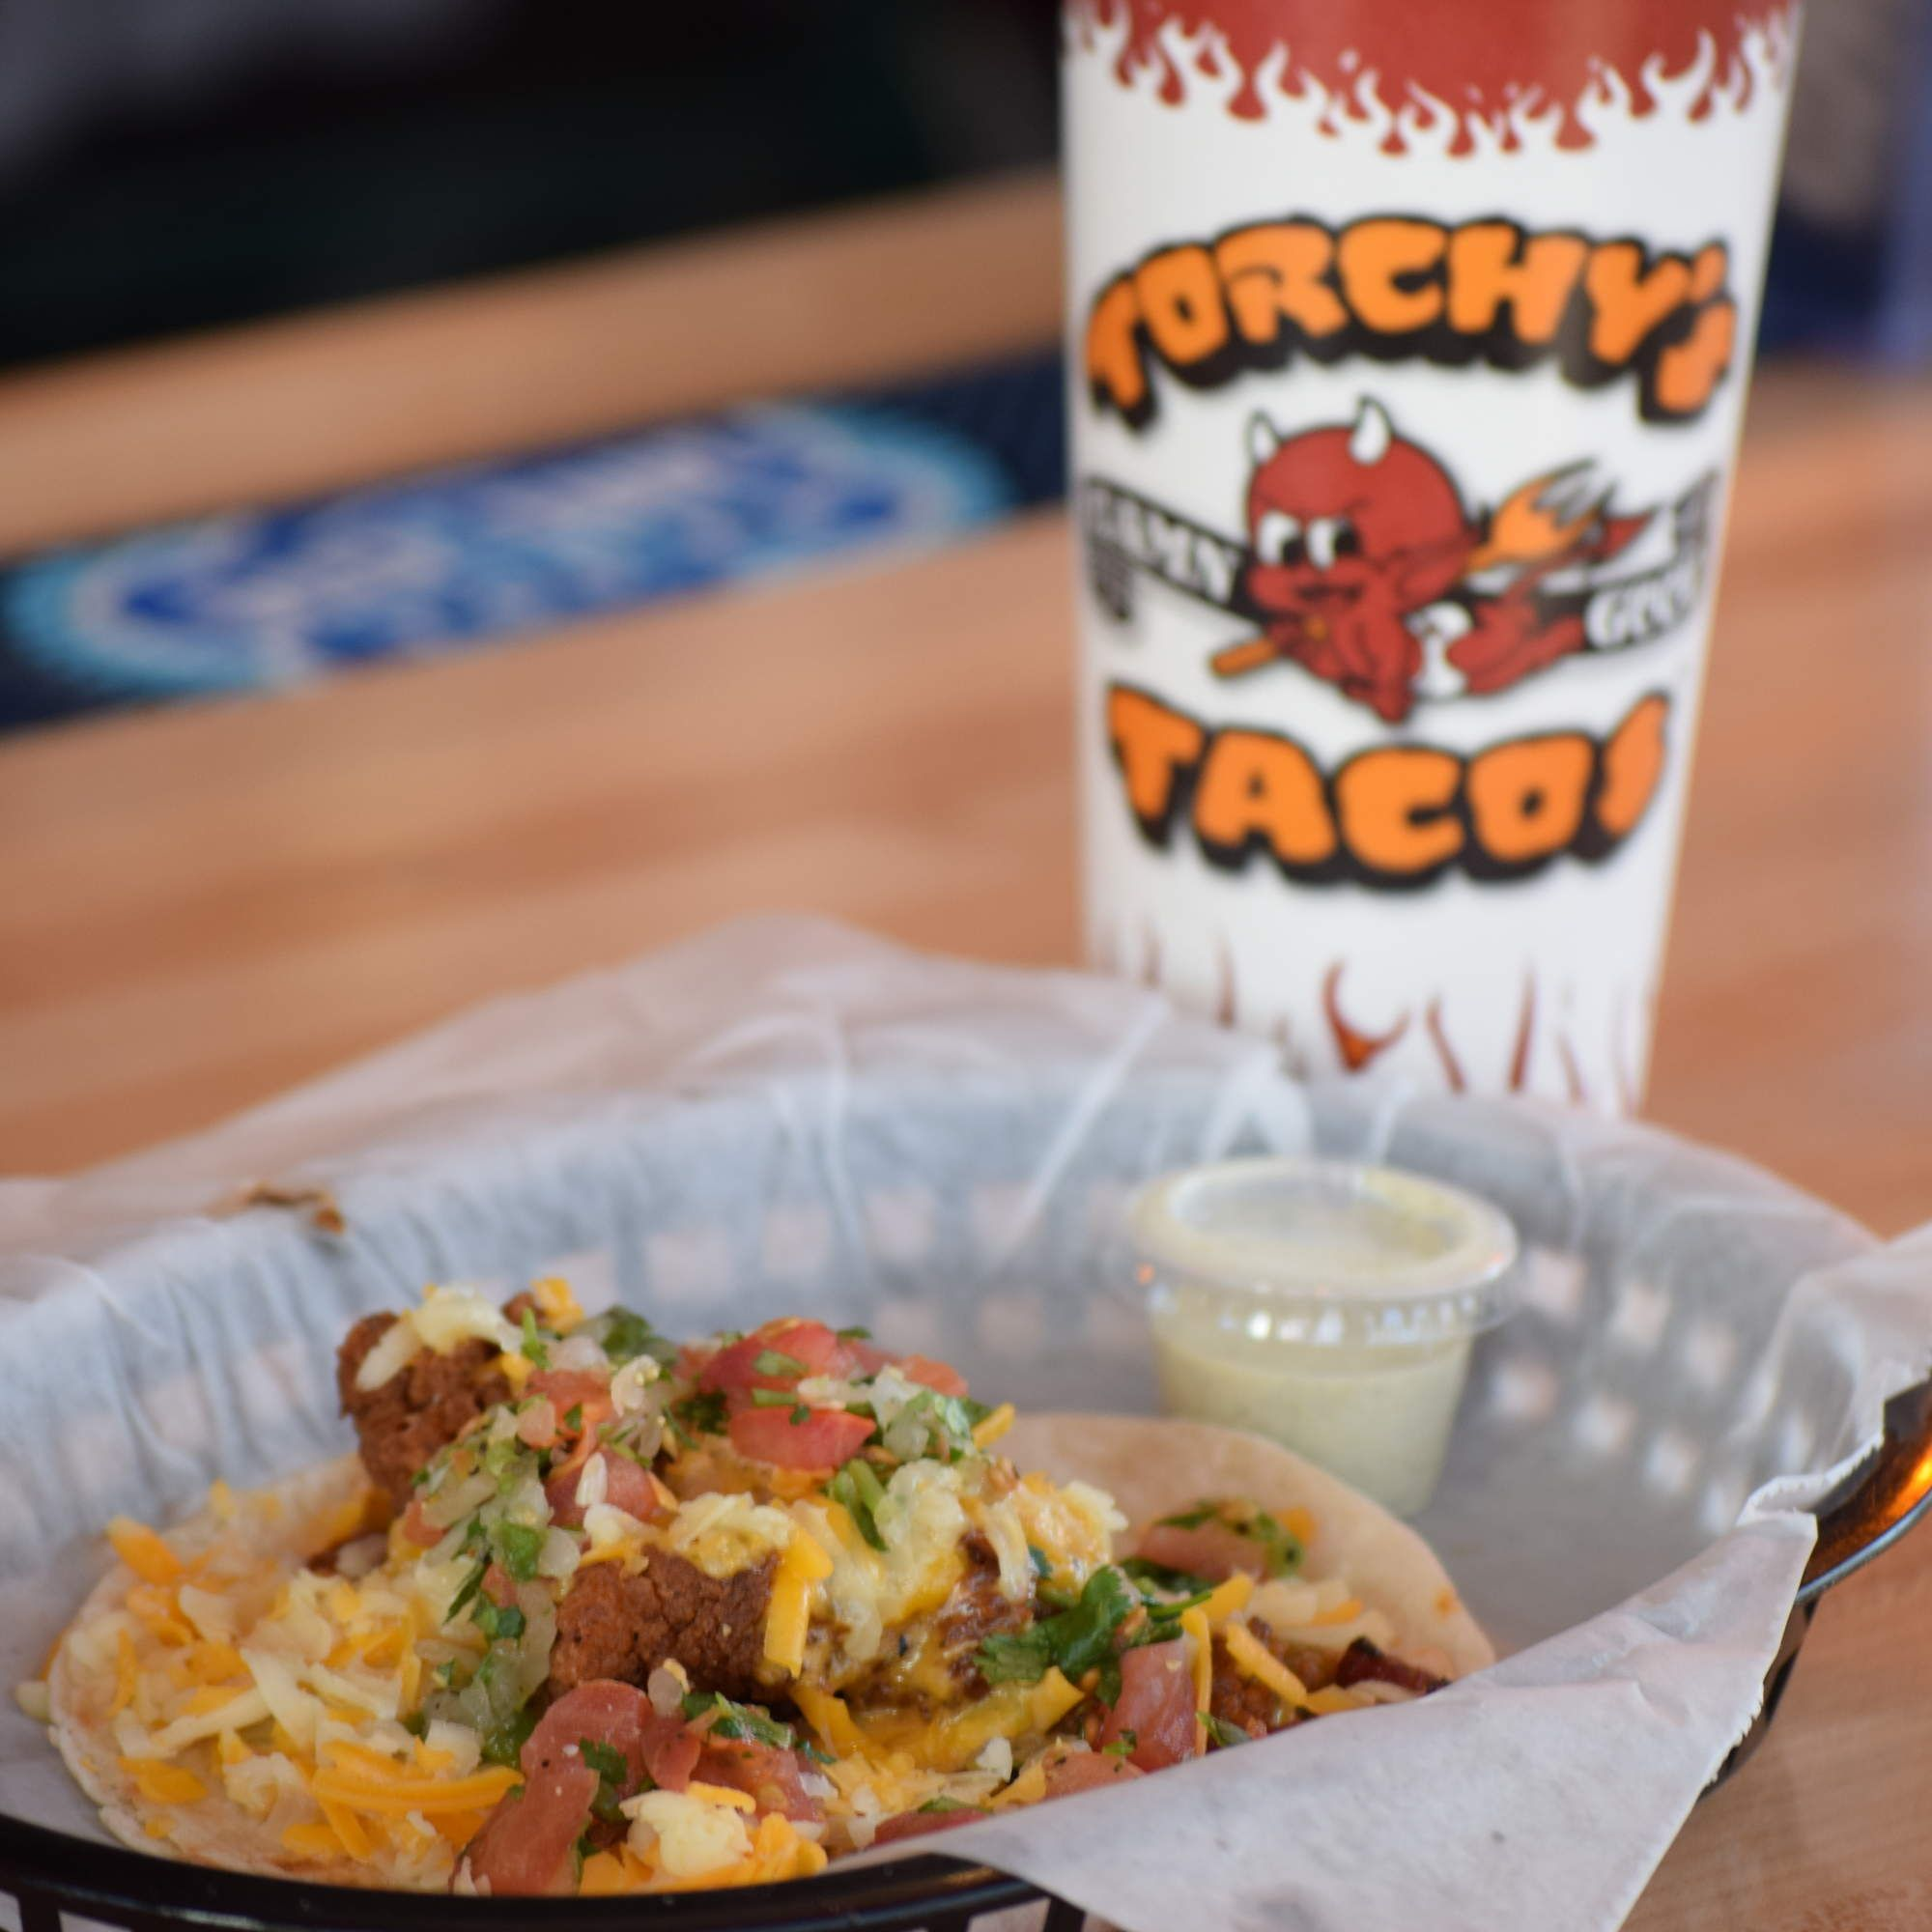 torchy's tacos' secret menu, ranked | secret menu, menu and food